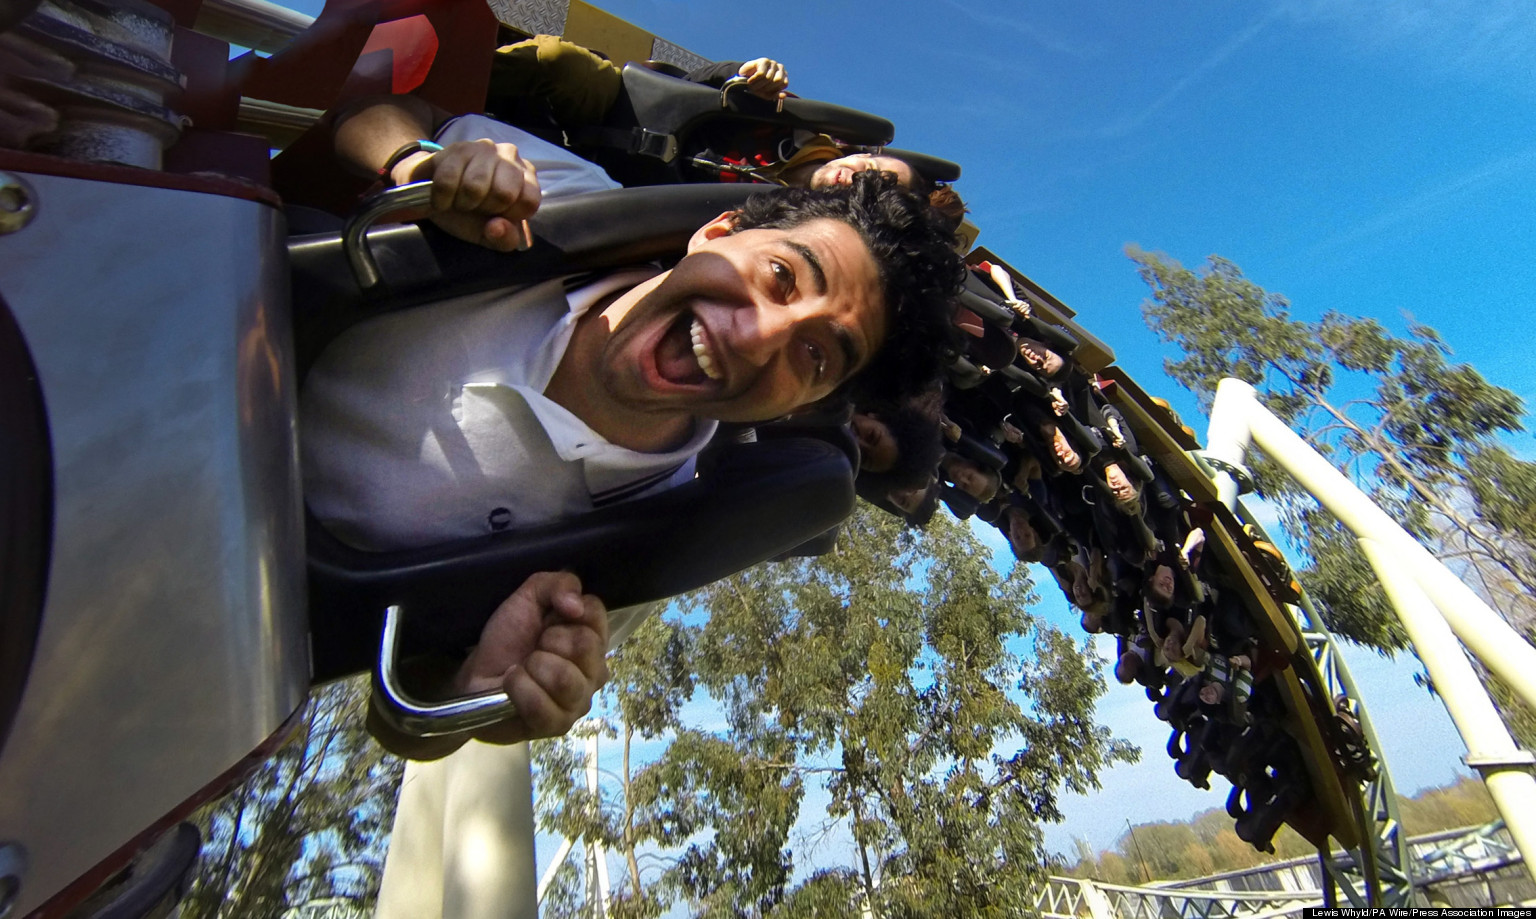 For roller coaster lovers, the big apple coaster has to be on your las vegas bucket list